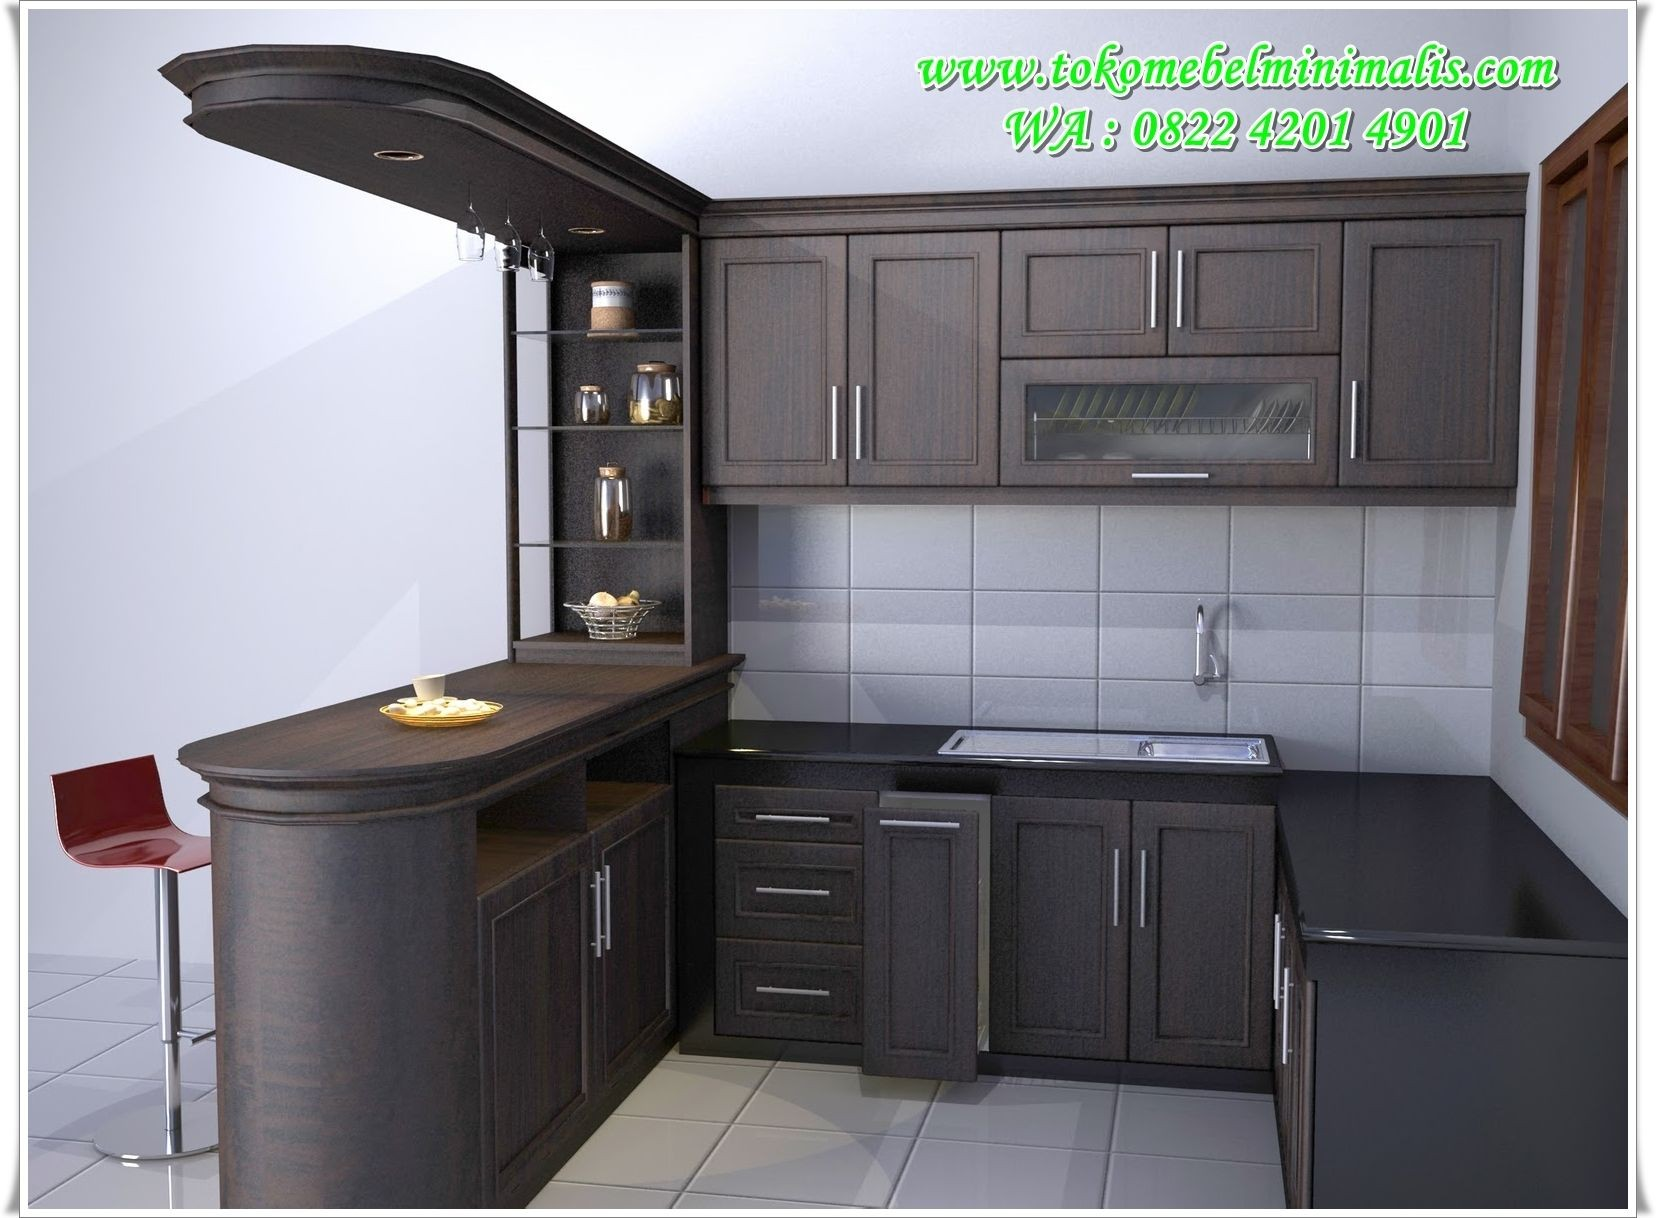 Desain Kitchen Set Kitchen Set Murah Kitchen Set Minimalis Modern Kitchen Set Minimalis